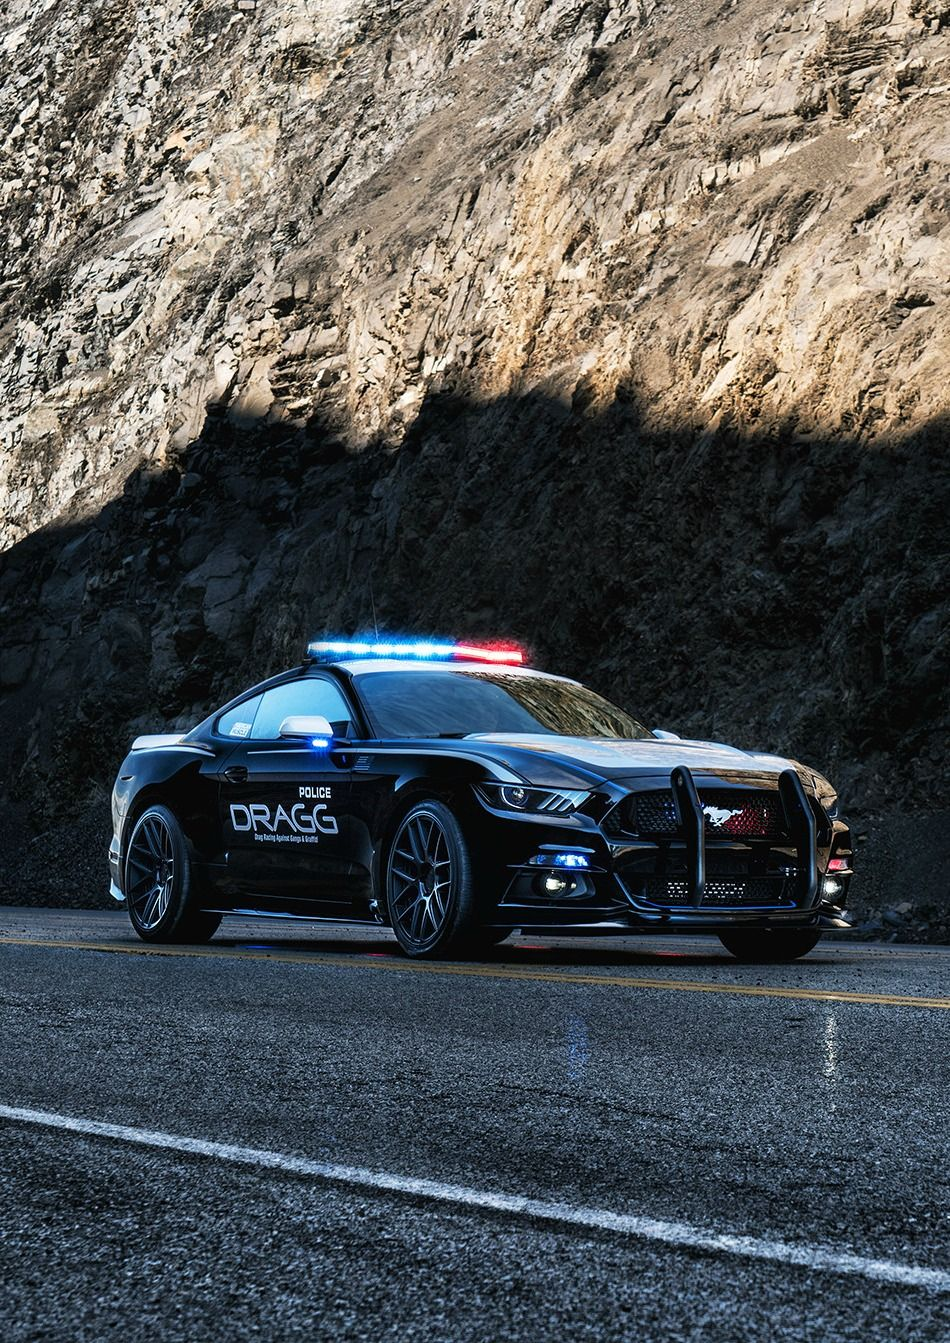 Pin By Groot On Garaje Dorado Mustang Police Cars Muscle Cars Mustang